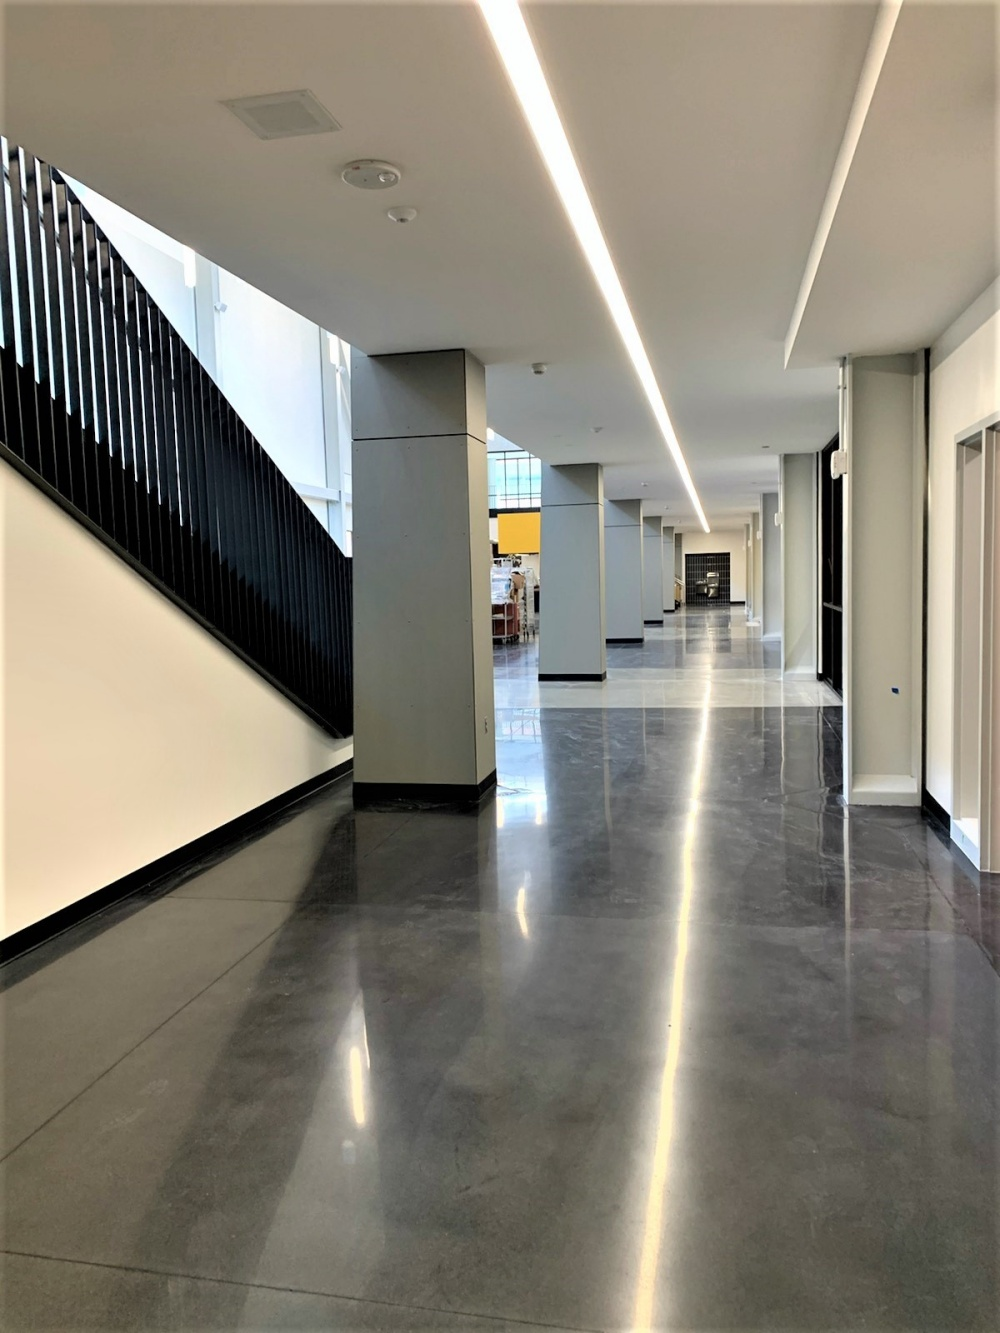 a polished concrete hallway in a middle school was preserved with Temporary floor protection by Skudo